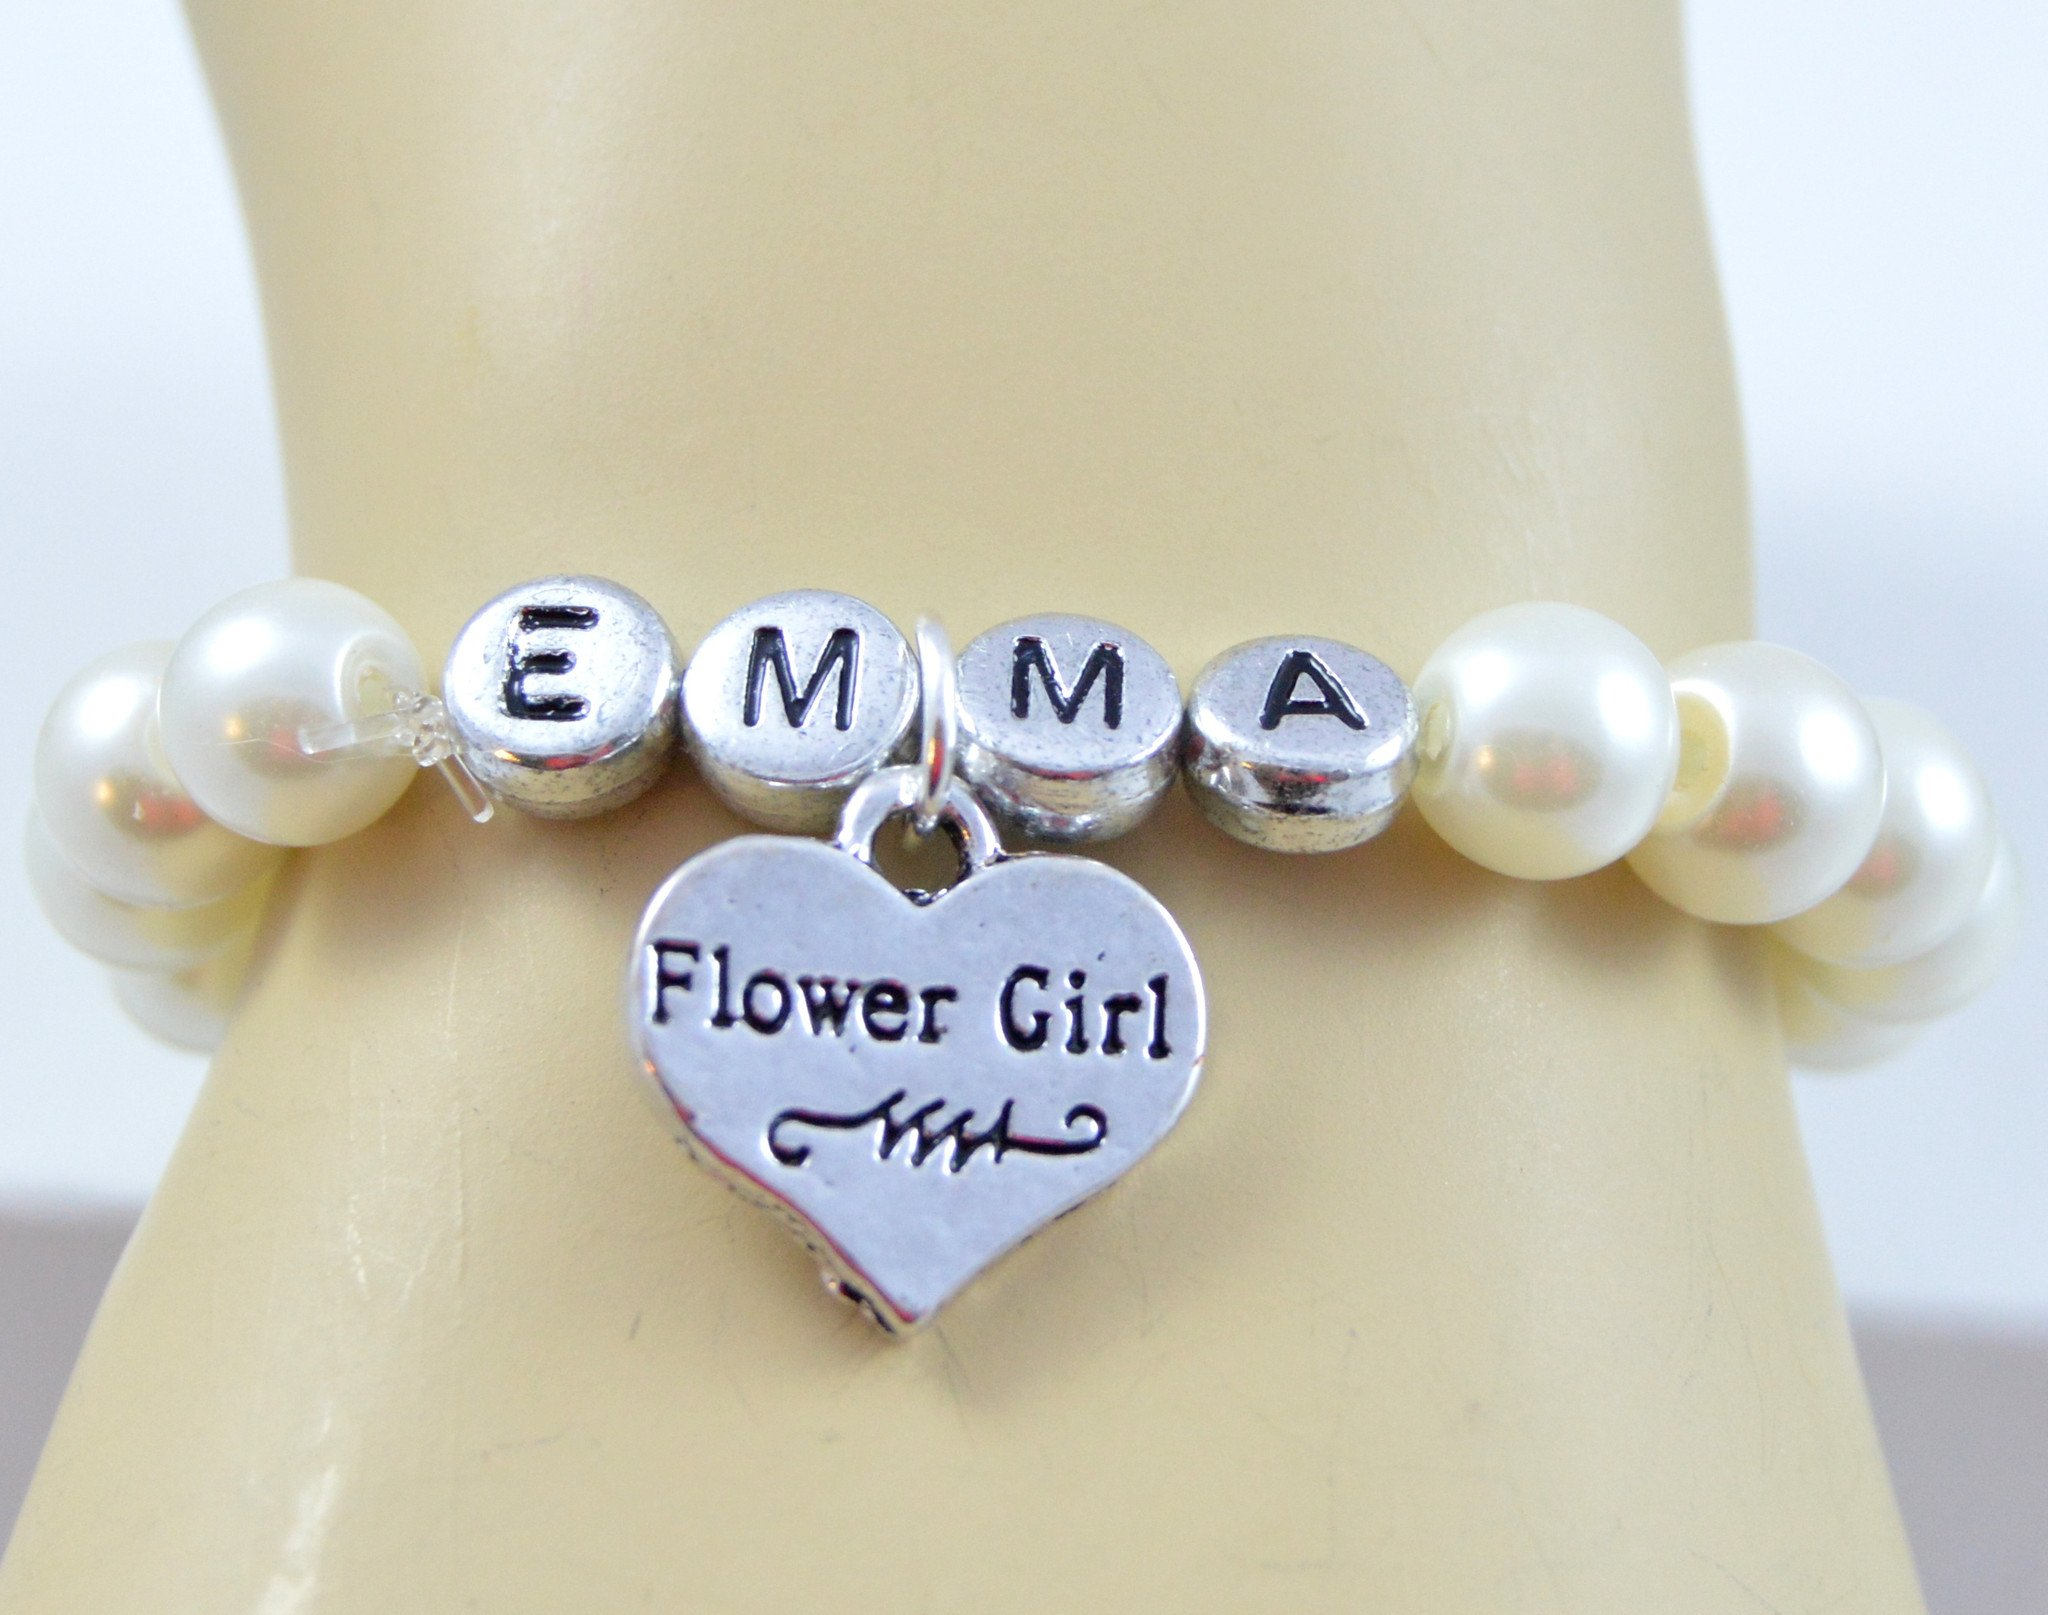 personalized flowergirl etsy personalizedflower buy now name details bracelet gift flower for girl com idealpin from ori